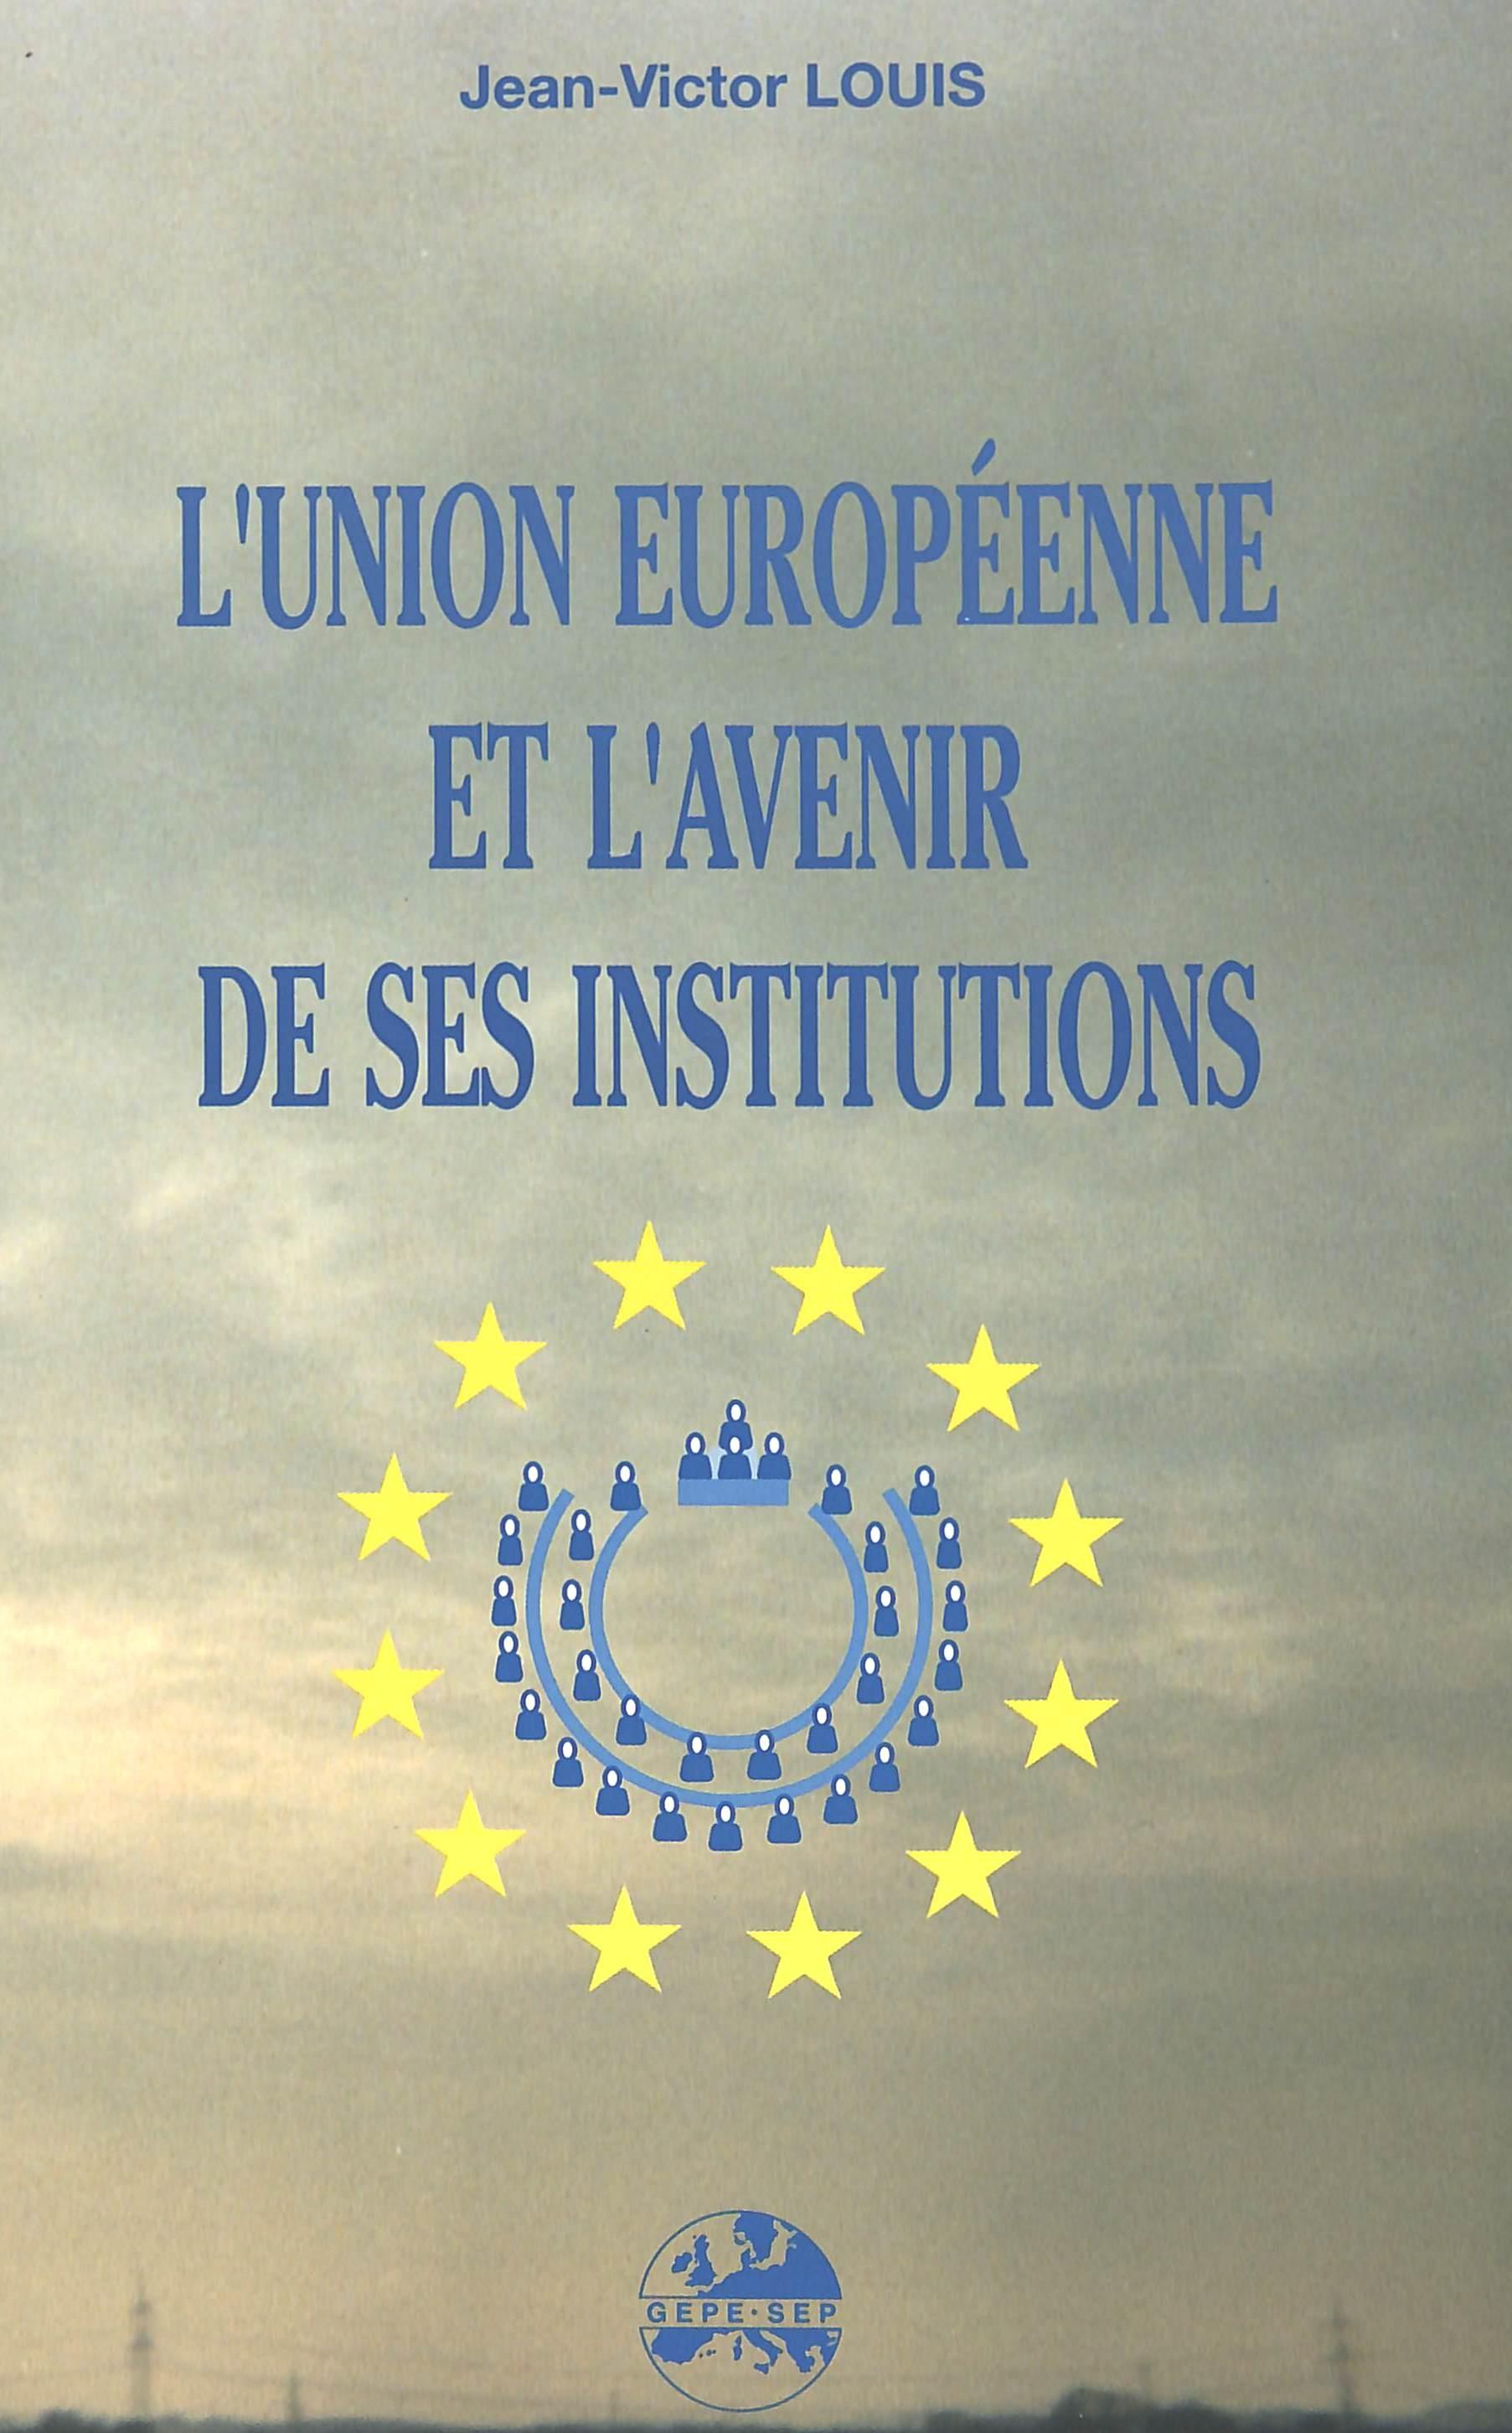 L'UNION EUROPEENNE ET L'AVENIR DE SES INSTITUTIONS